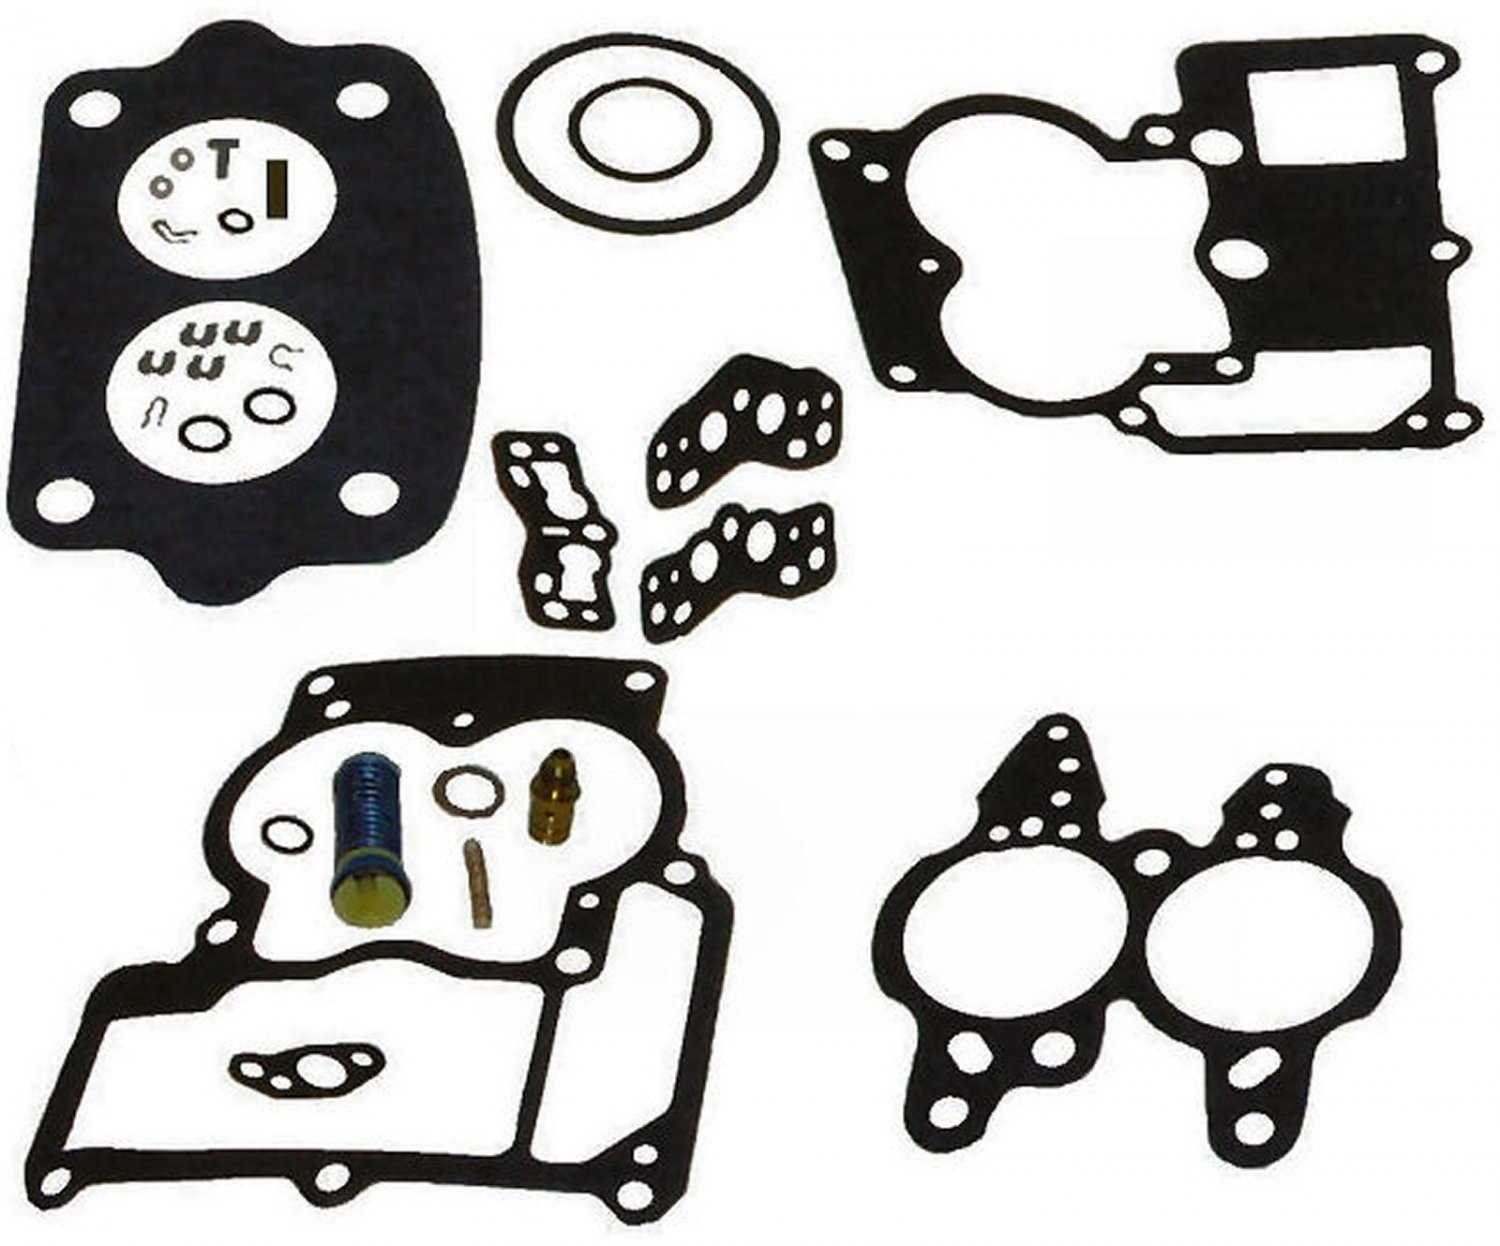 2BBL Rochester Carburetor Repair Kit for Inline 4 and 6 cyl GM replaces 823427A1 982384 (TM7746)